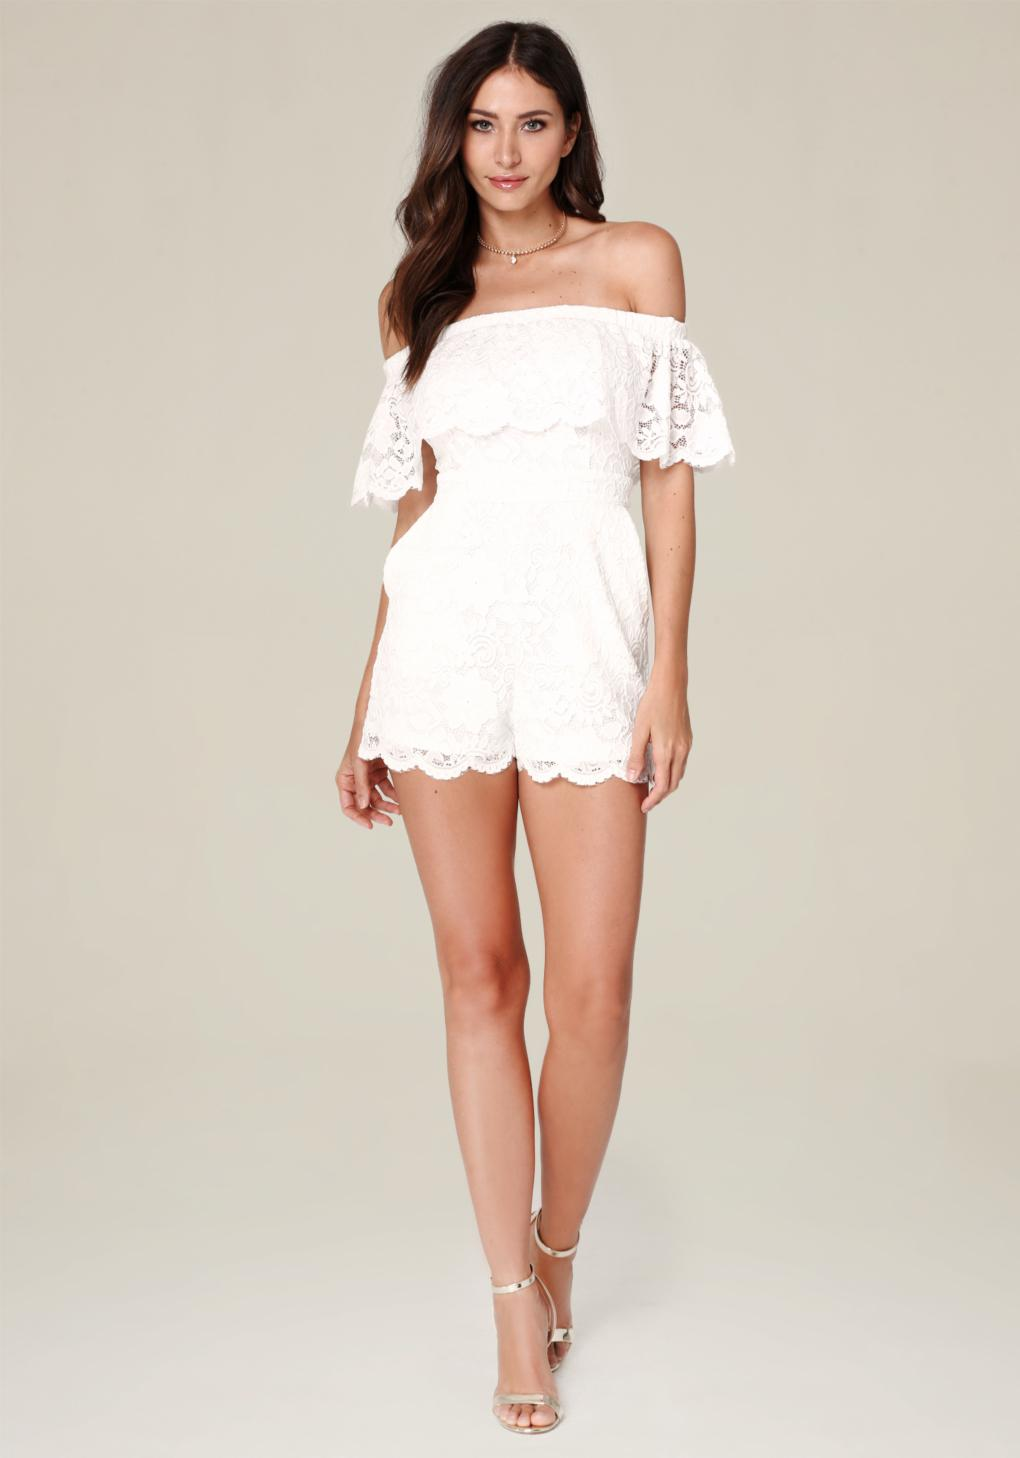 c331828734a Lyst - Bebe Lace Off Shoulder Romper in White